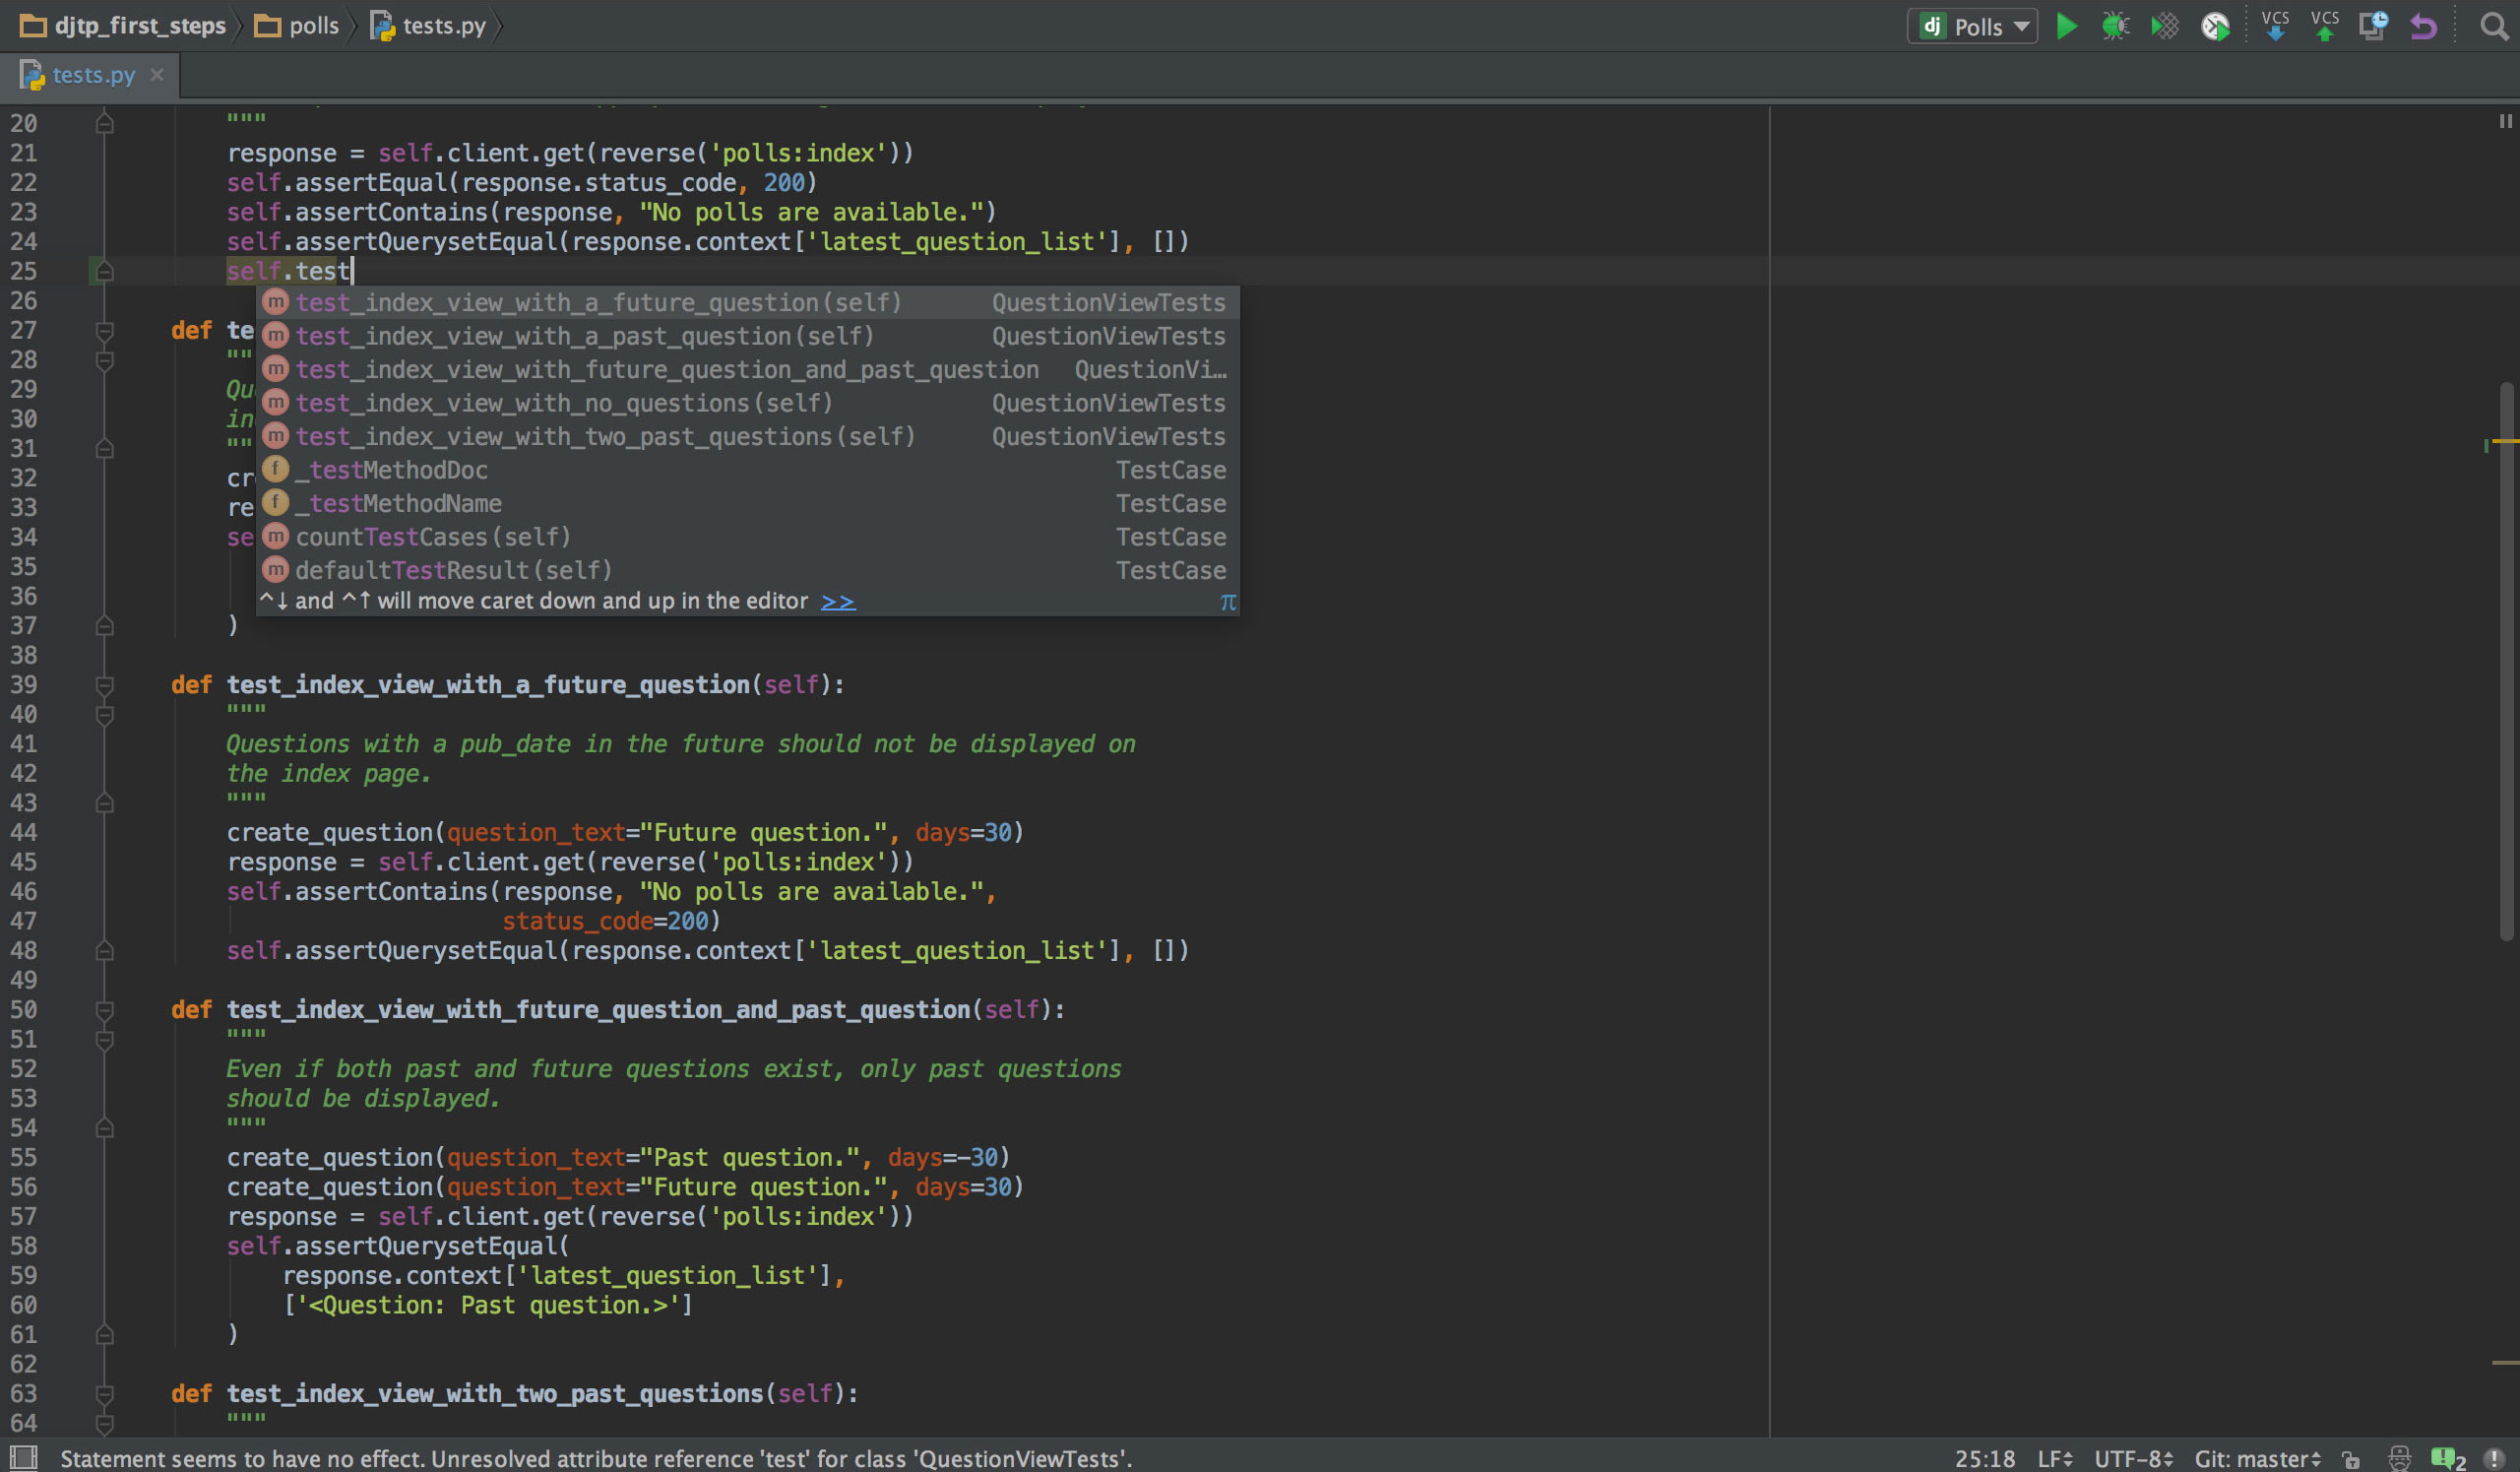 PyCharm: Python IDE for Professional Developers by JetBrains